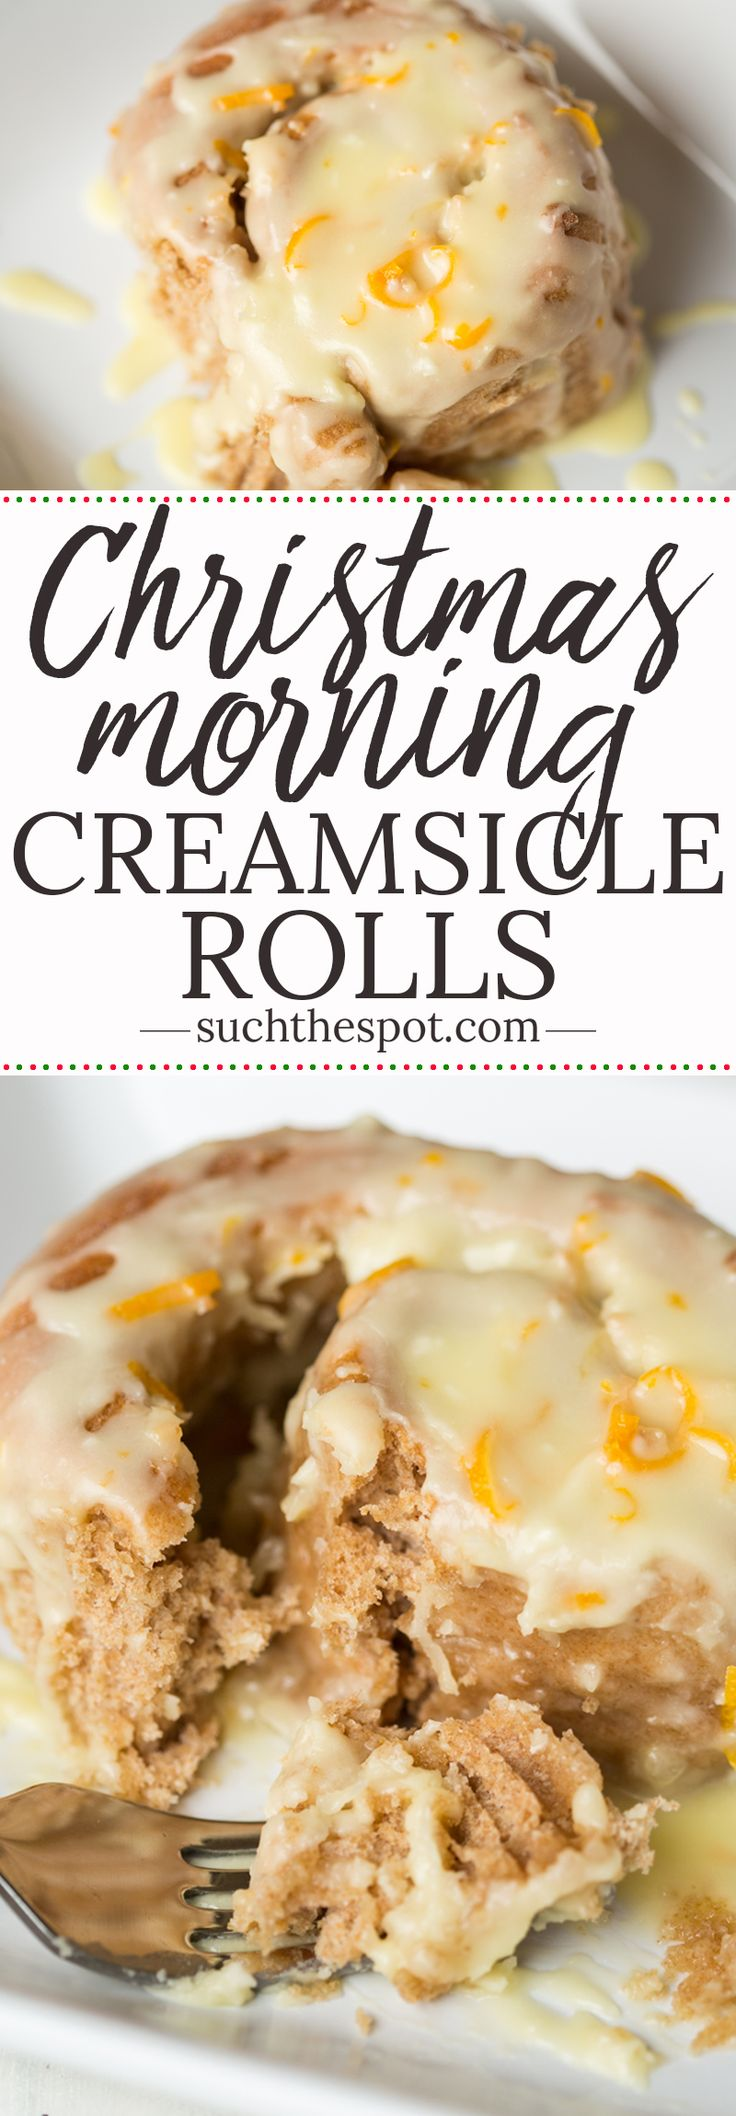 These homemade Orange Creamsicle Rolls are a sweet breakfast or brunch treat for a crowd. Made with whole wheat flour in a bread machine, they're pollowy soft and sweet and delicious. #Christmas #breakfast